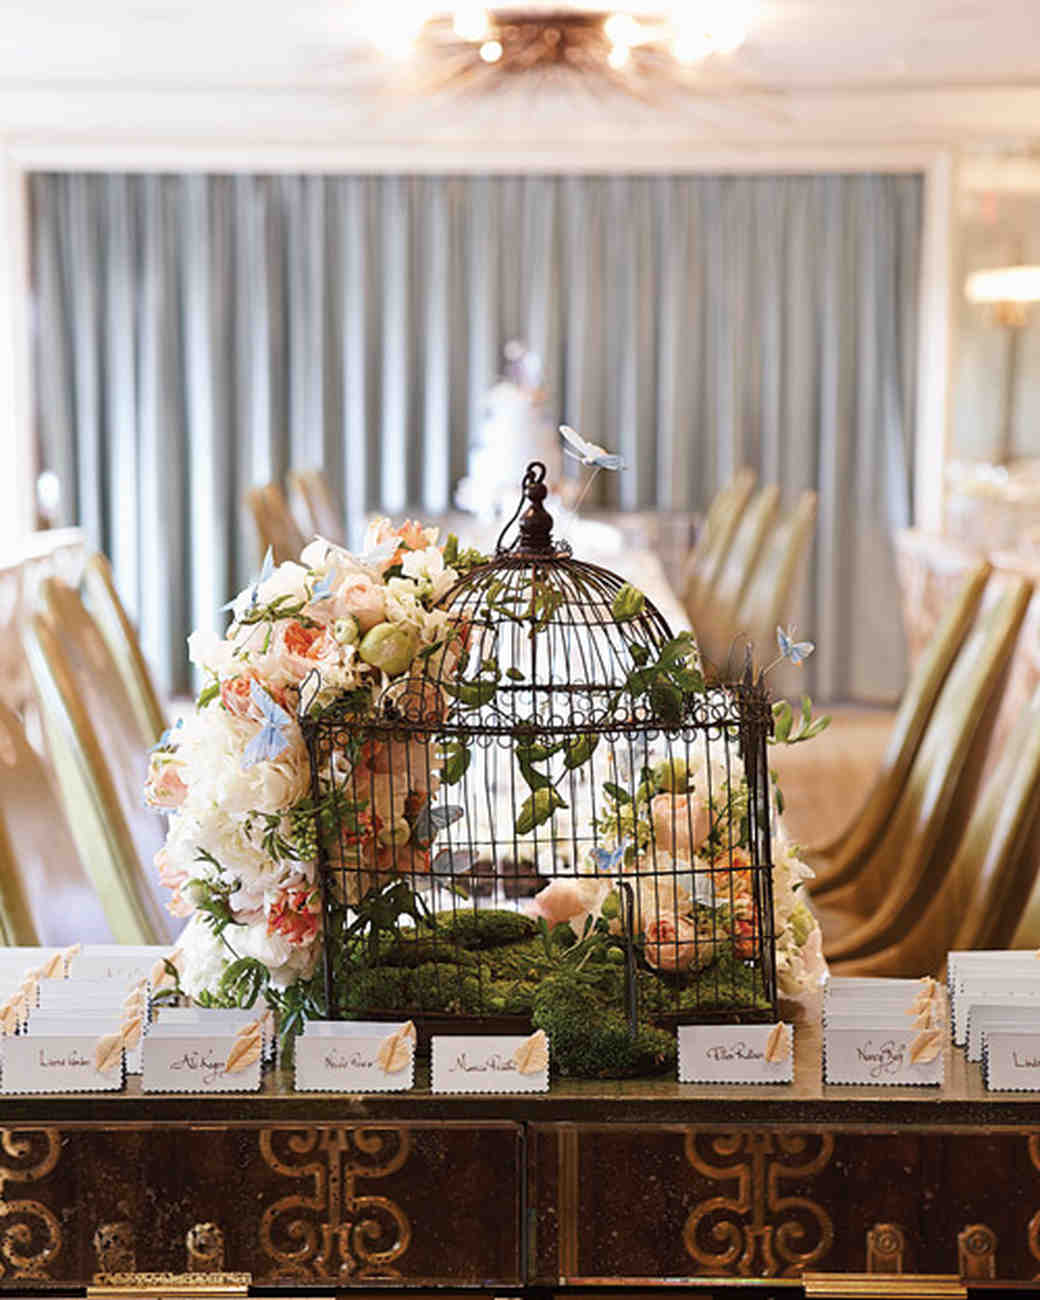 Bridal Shower Tips from the Experts | Martha Stewart Weddings